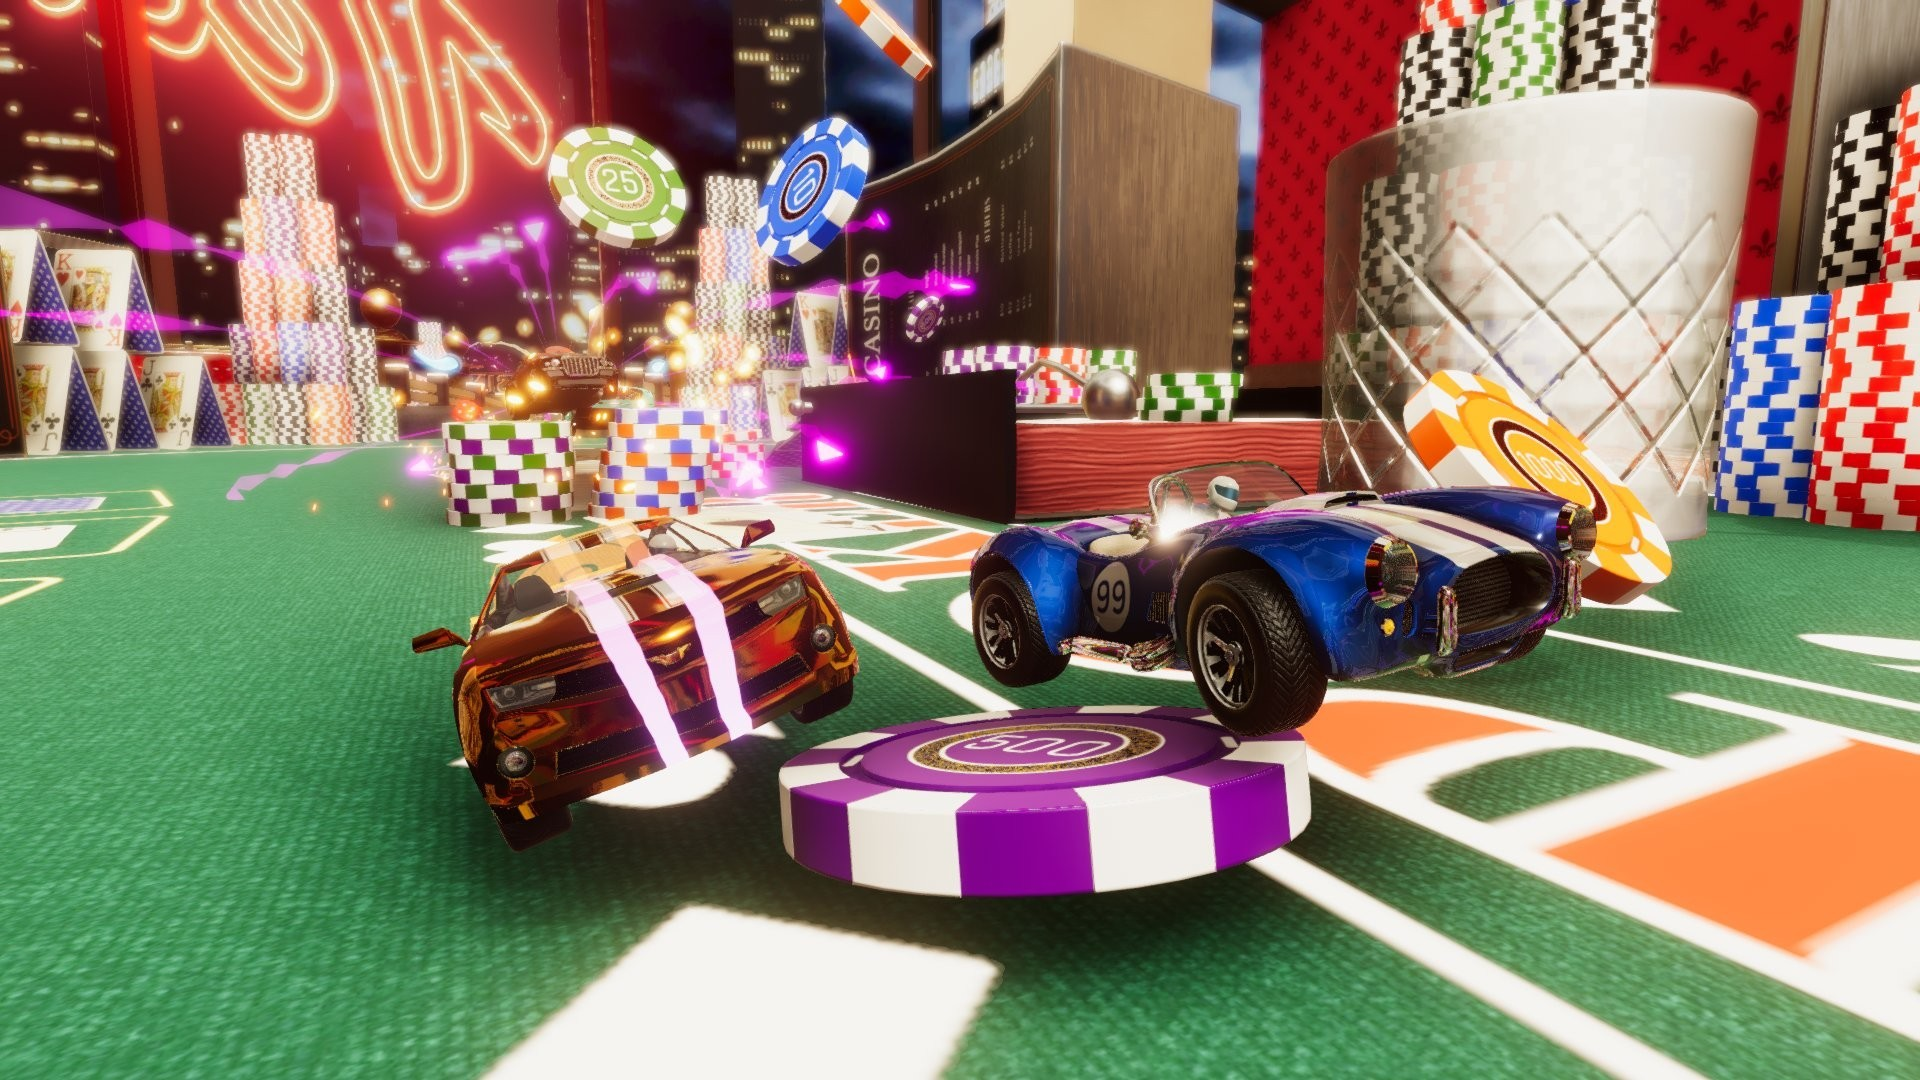 Cars 2 building games casinos in shawano wisconsin